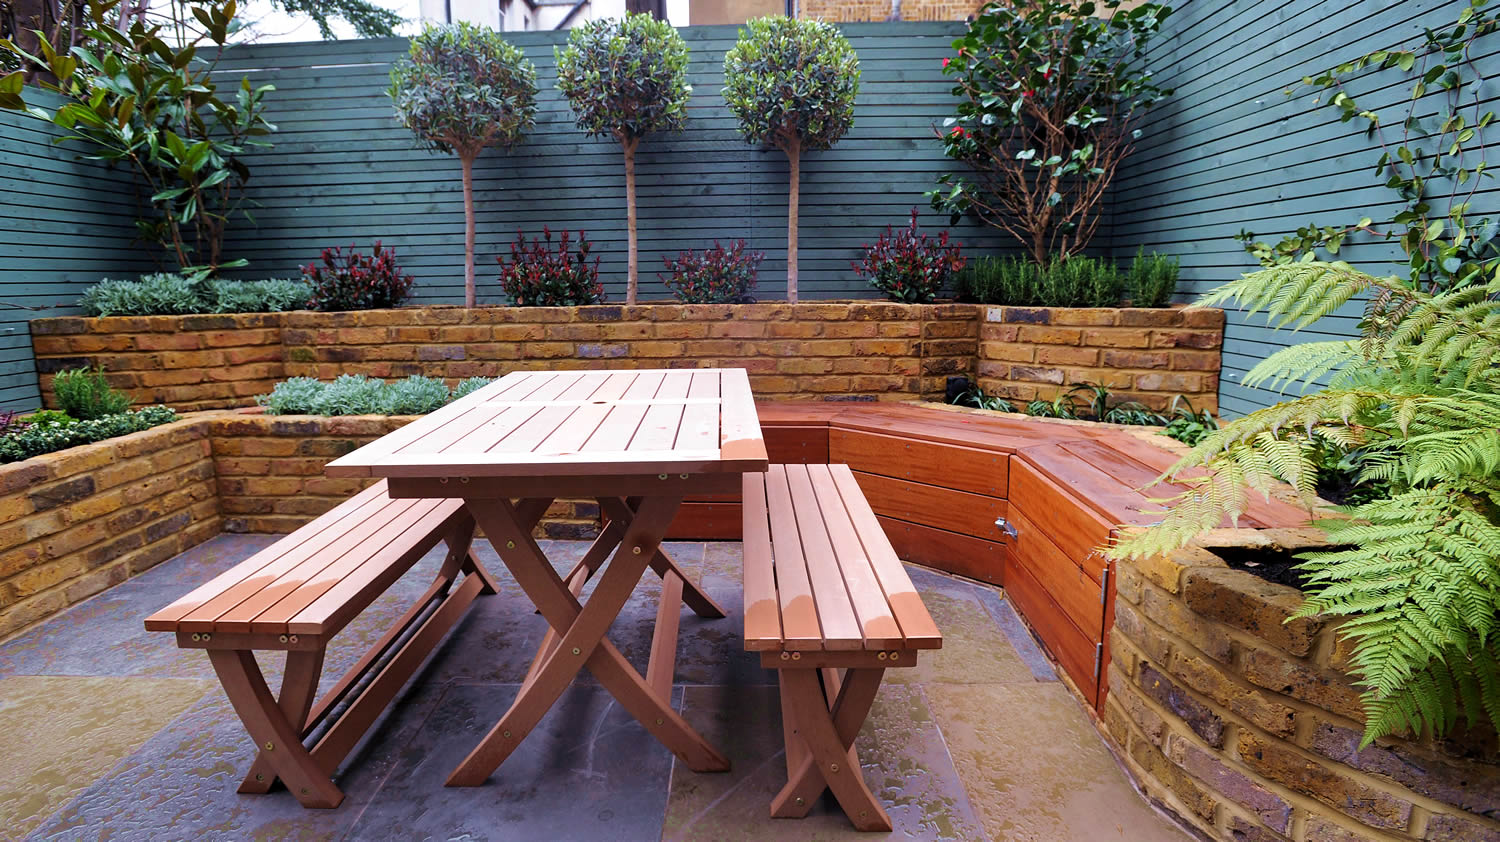 Contemporary London garden design